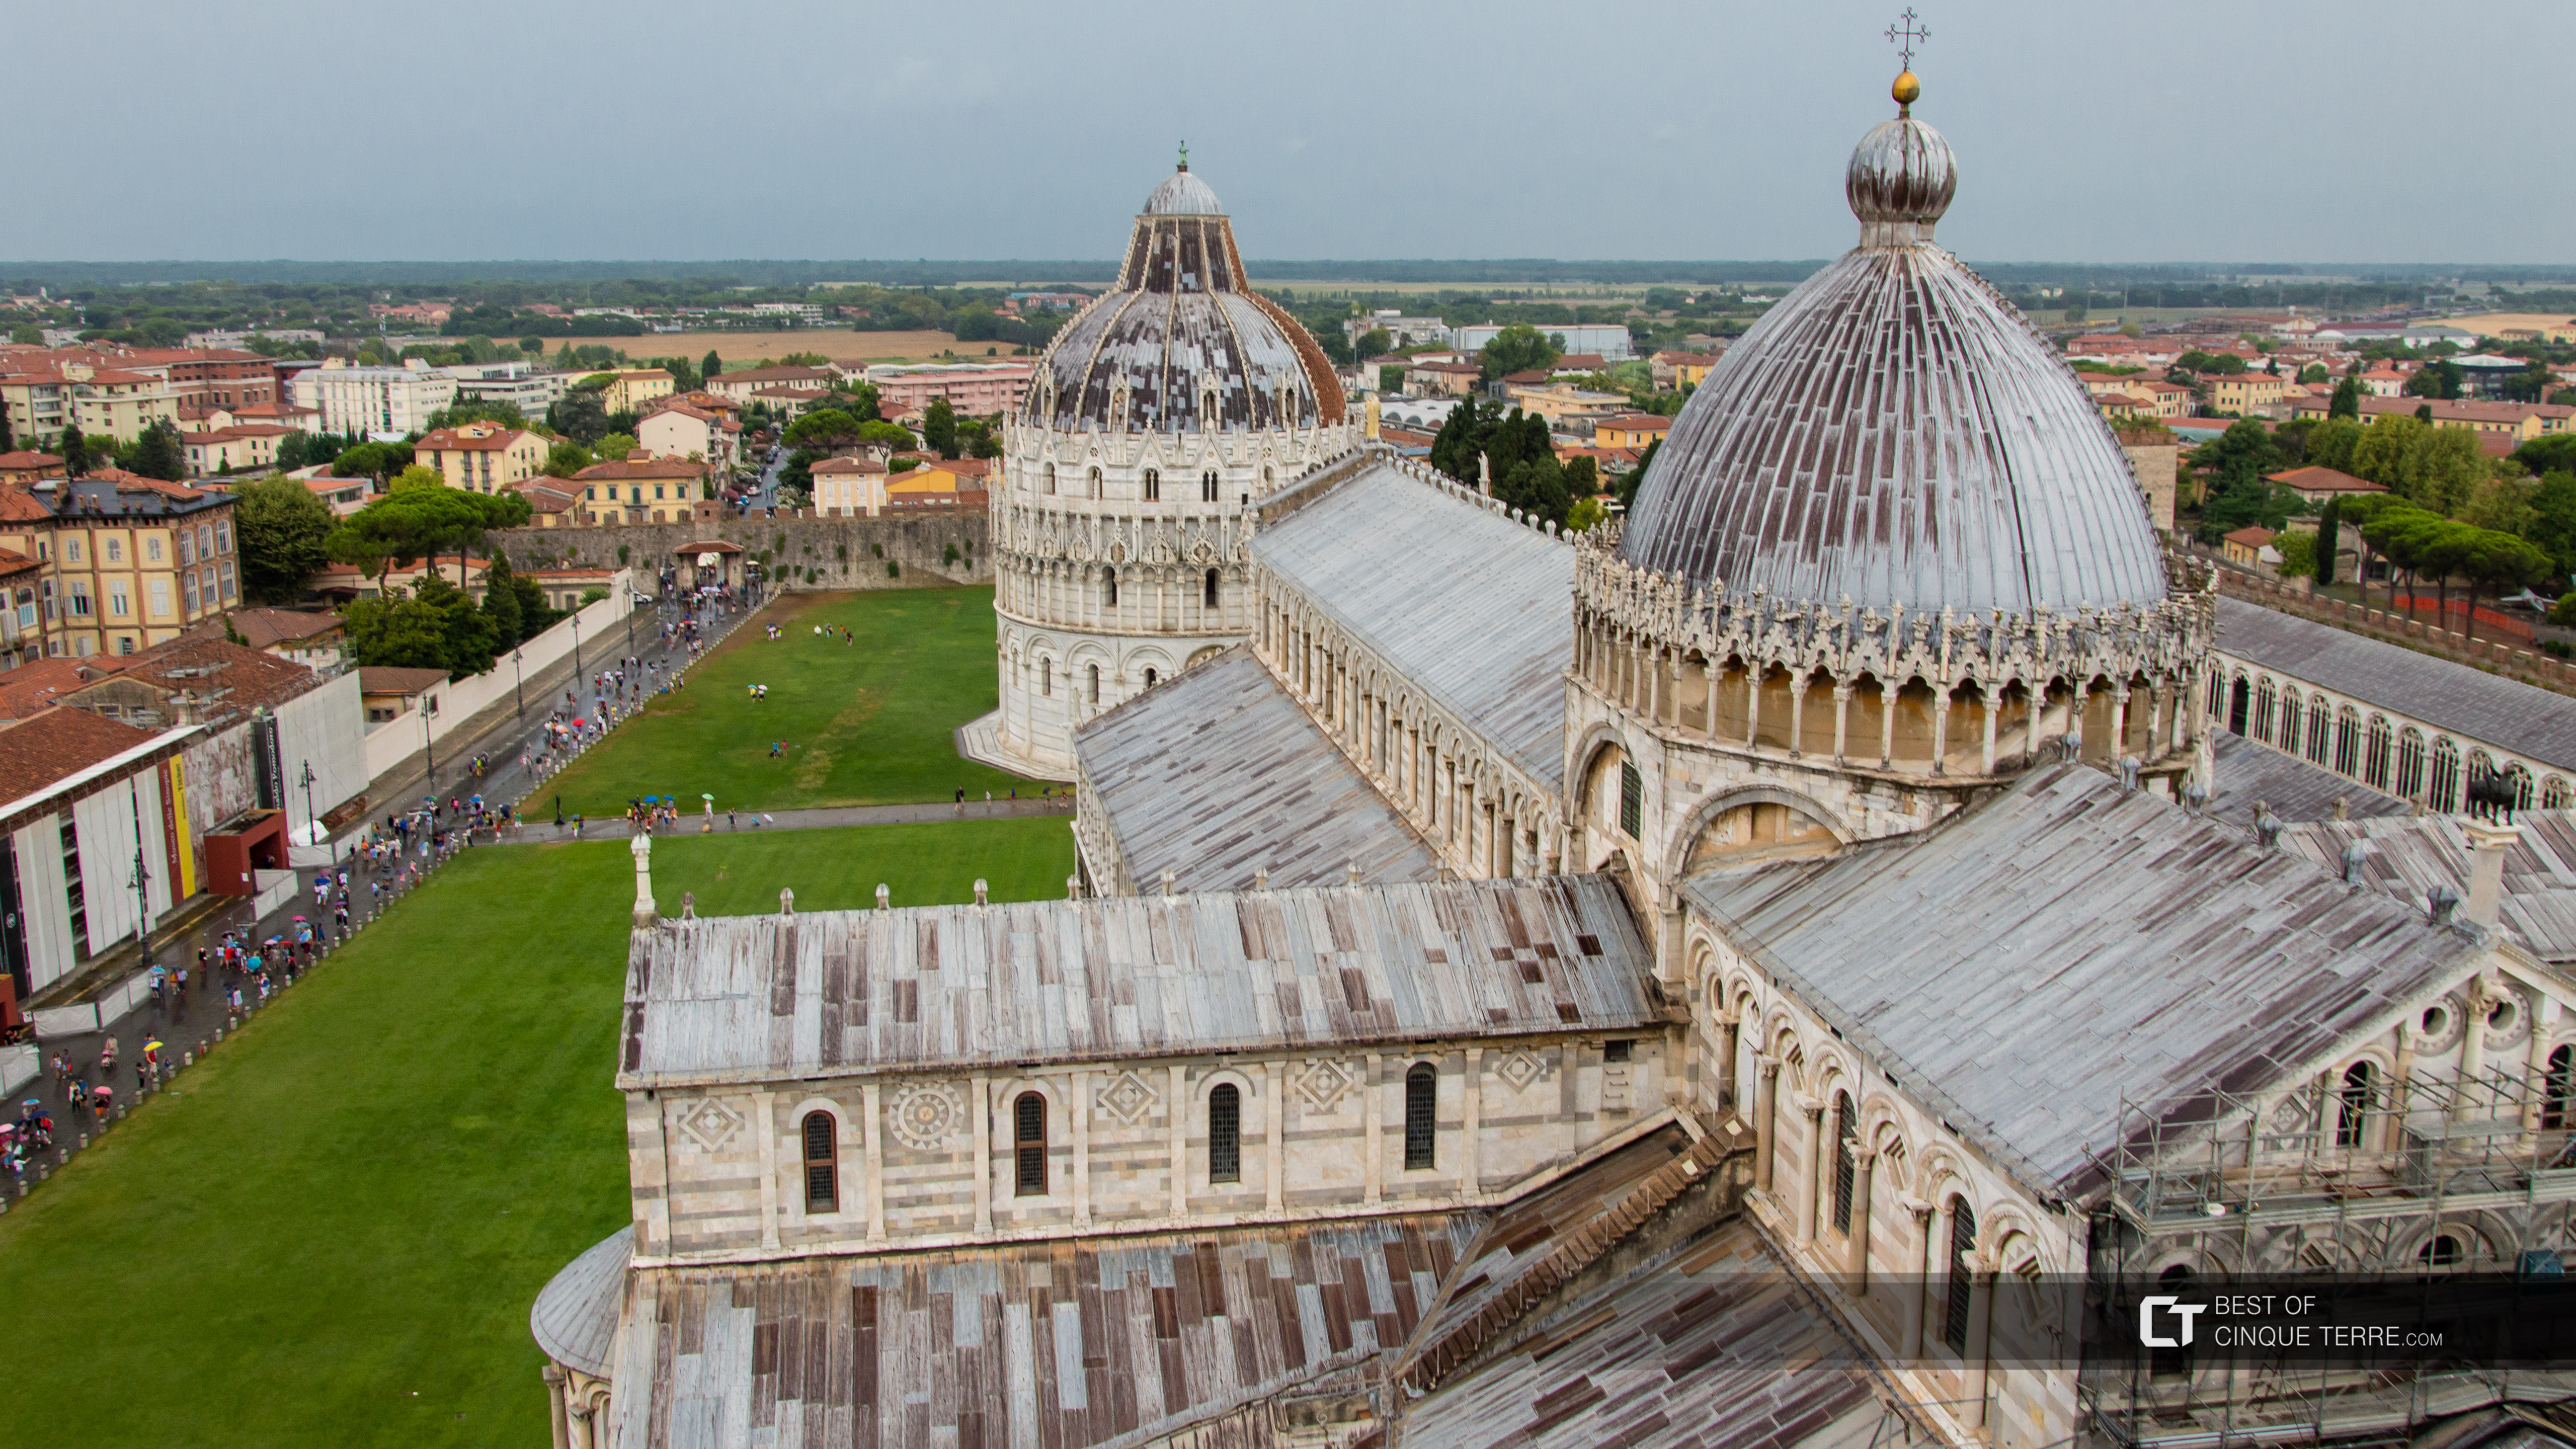 Piazza dei Miracoli seen from the Leaning Tower, Pisa, Italy